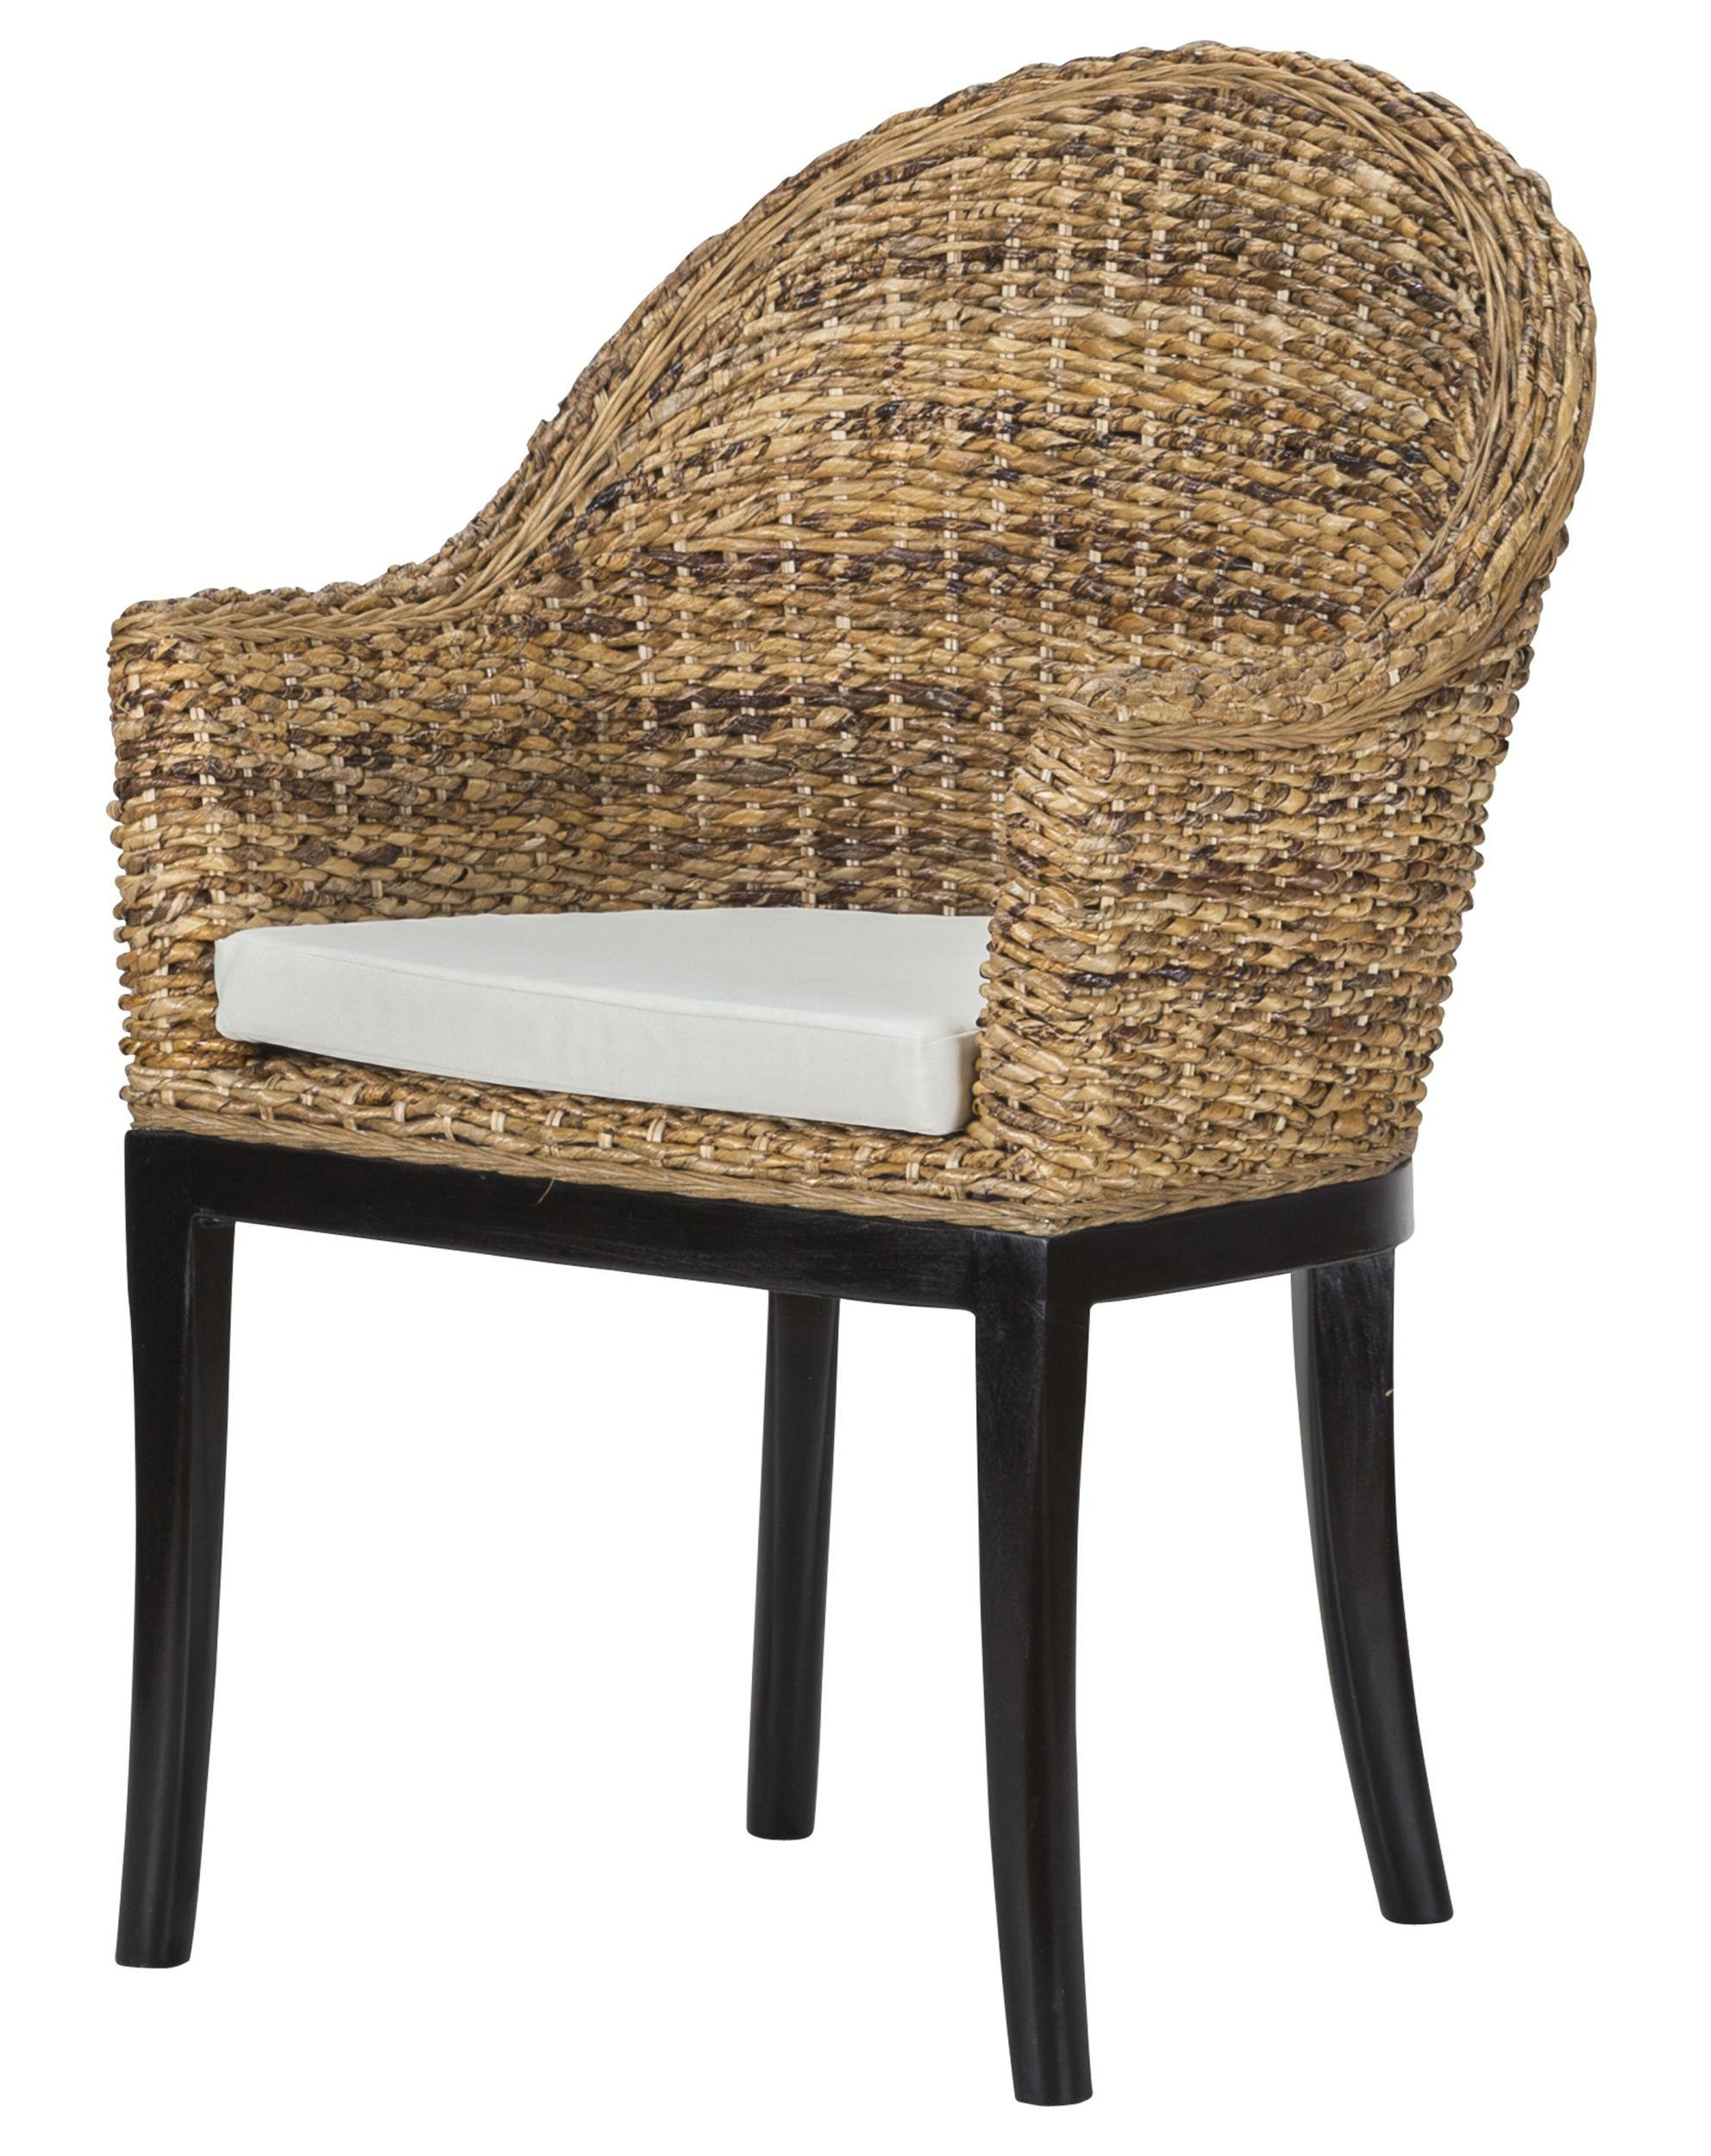 Caldwell Armchair Regarding Most Popular Caldwell Armchairs (View 9 of 20)